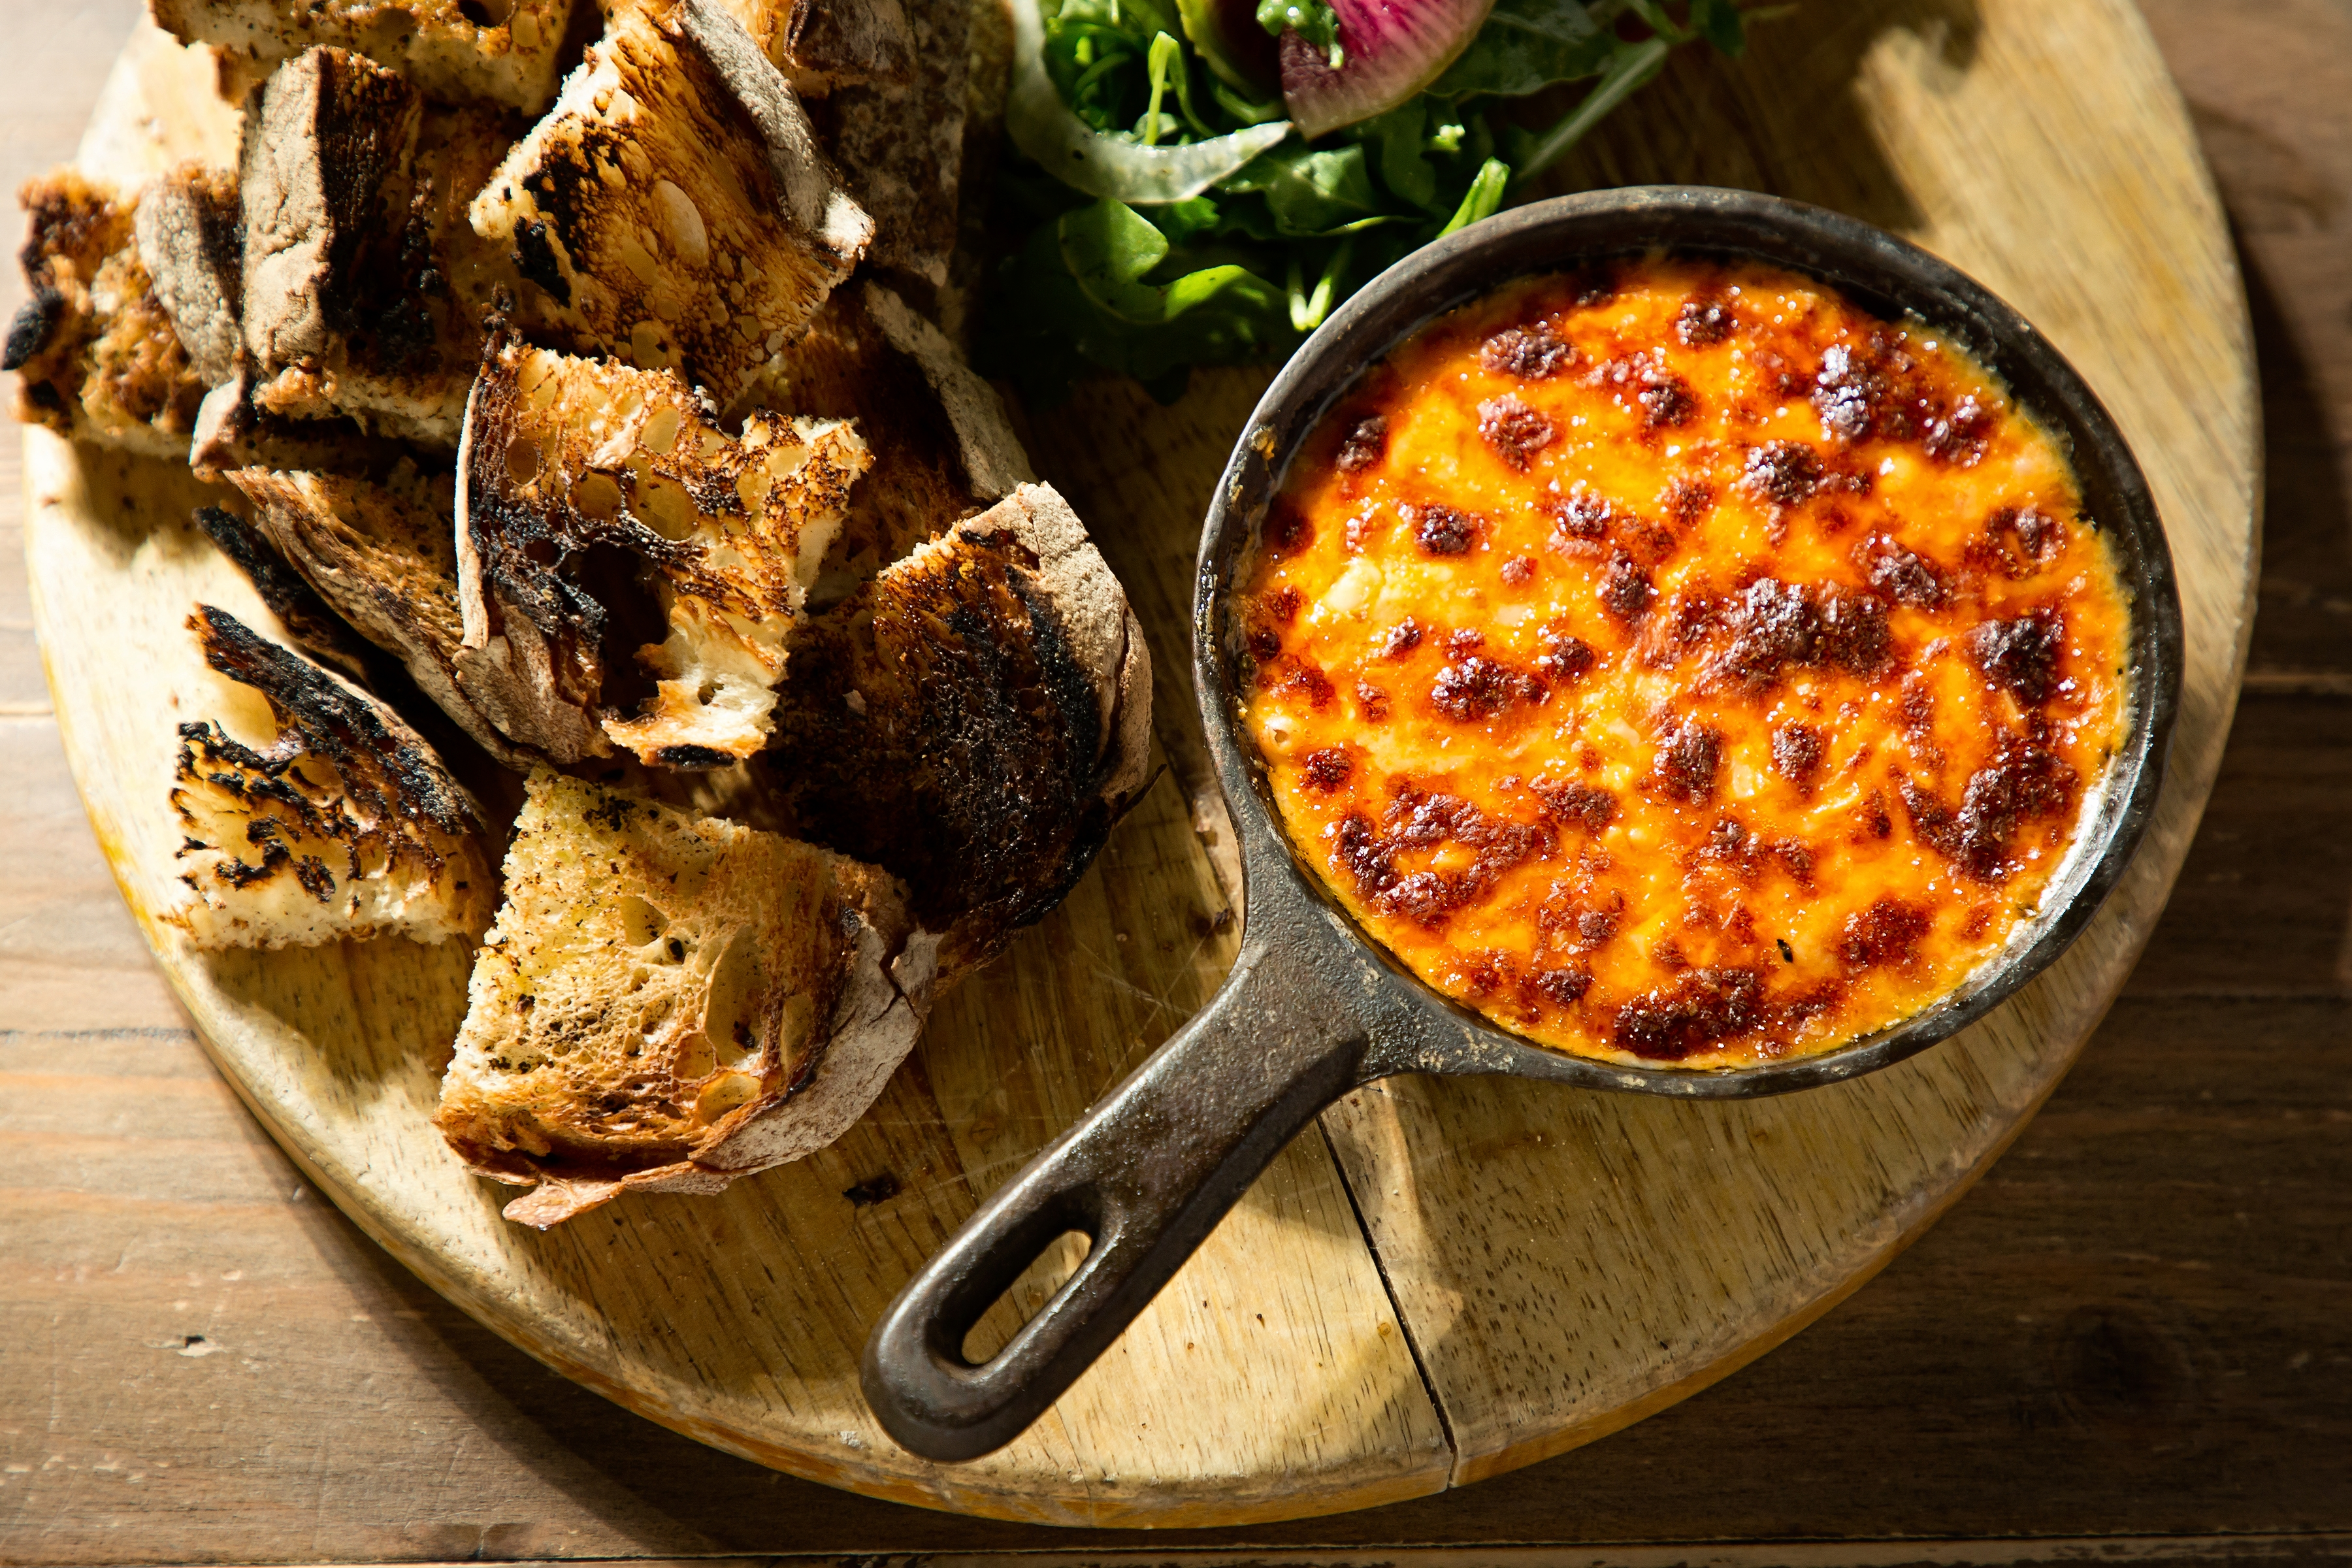 "<p>""The fondue at The Fainting Goat is by far the most popular dish on the menu,"" says executive chef and partner Nathan Beauchamp. It must be the melted goat cheese, Fresno peppers and herbs and accompanied by grilled bread for dipping that keeps diners coming back for more of this brunch fondue. On the dinner menu, it comes with grilled bread and shaved fennel. (Image: Scott Suchman){&nbsp;}</p>"